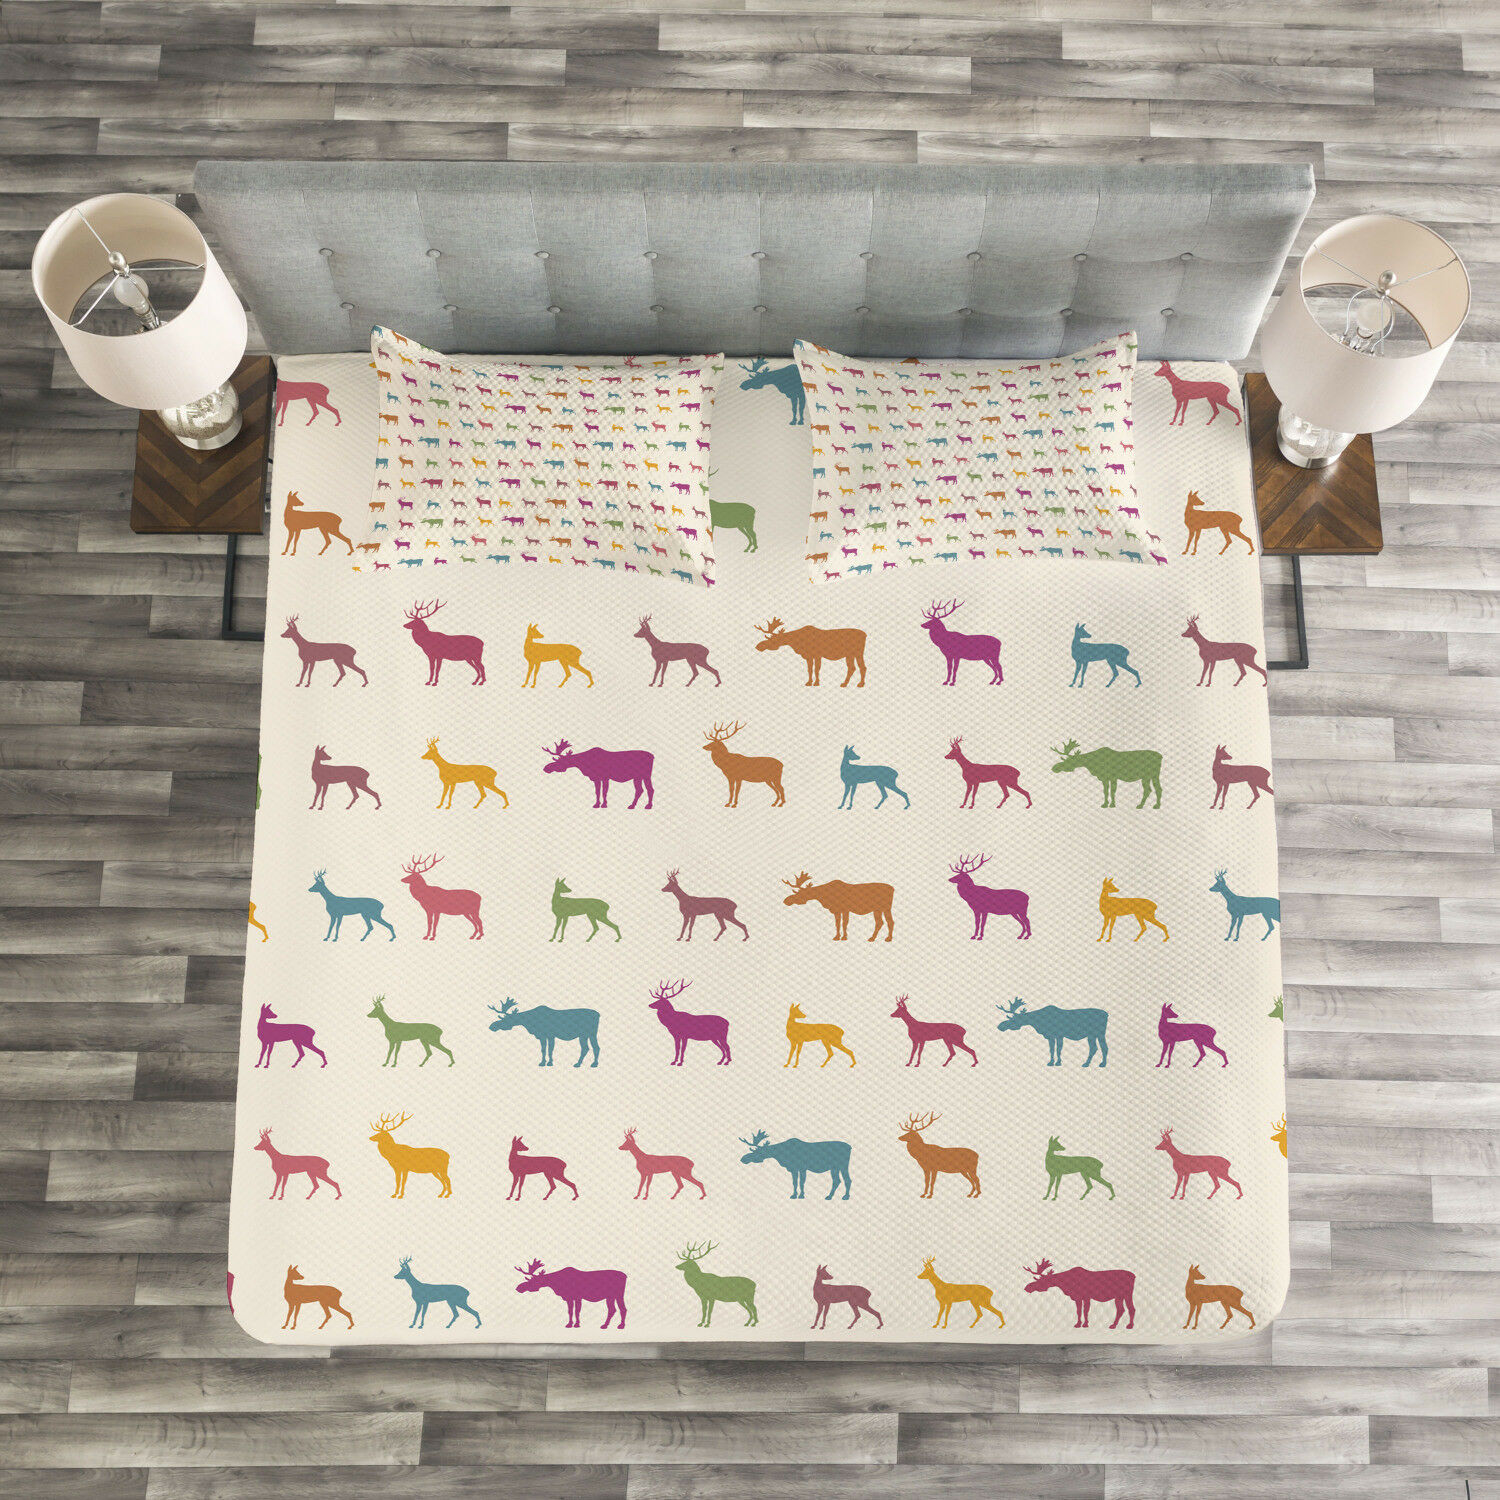 Deer Quilted Bedspread & Pillow Shams Set, Animal Silhouettes Pattern Print